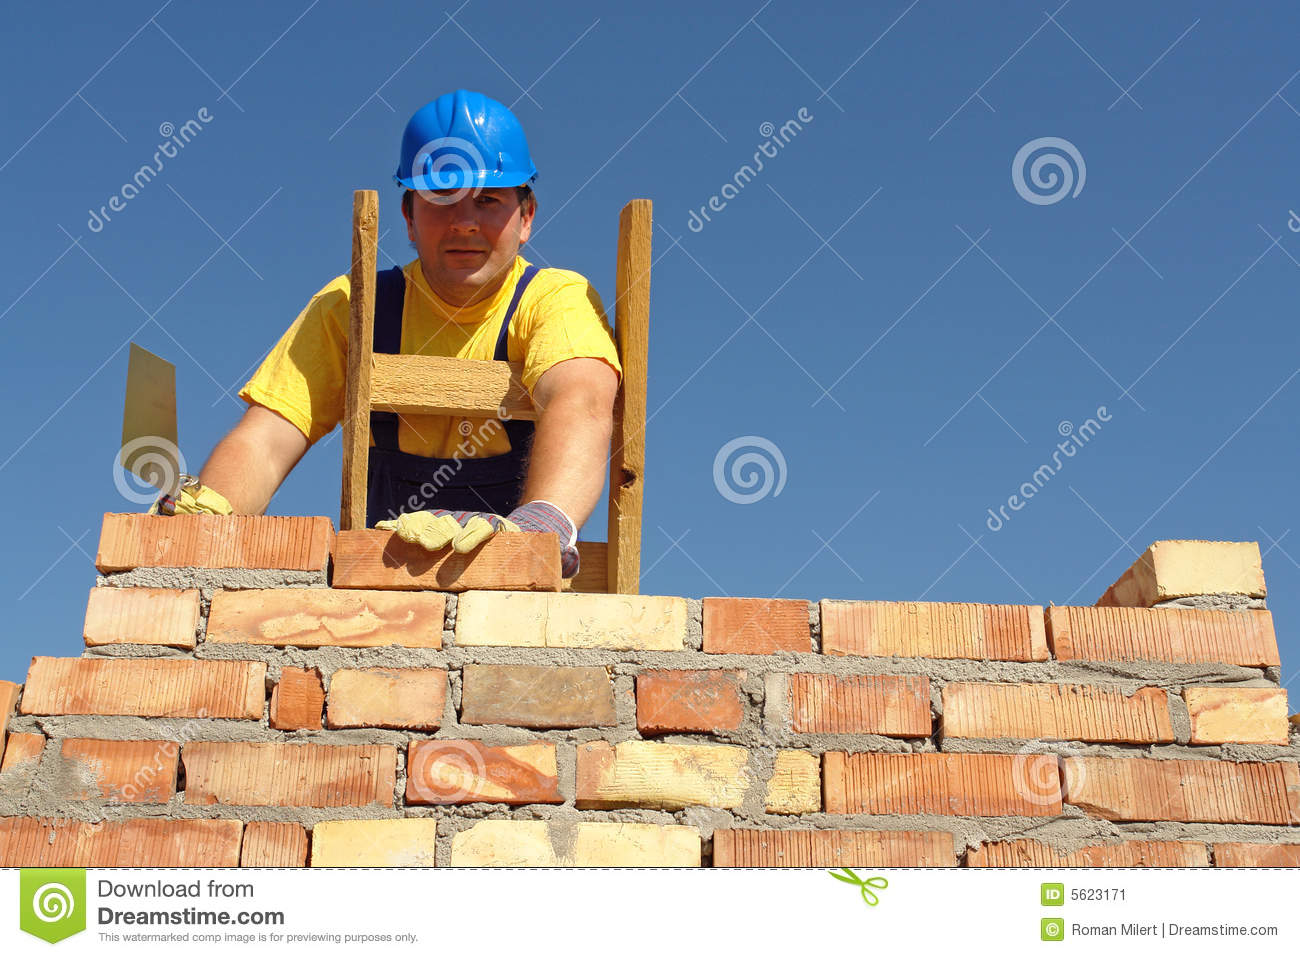 Mason building brick wall standing on wooden ladder.